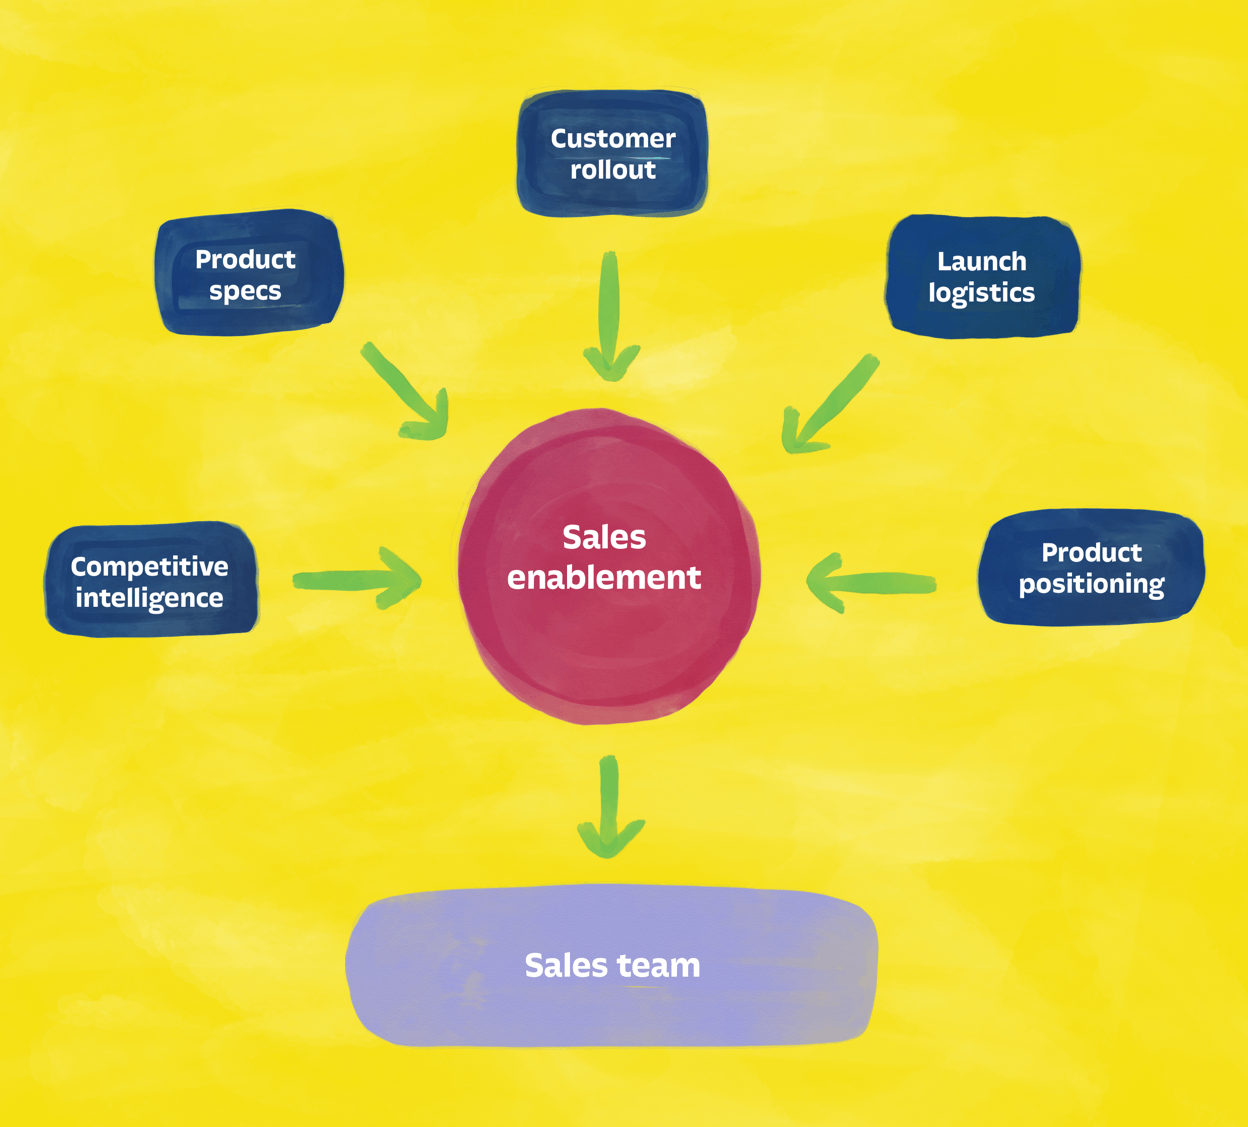 sales enablement process for product launch